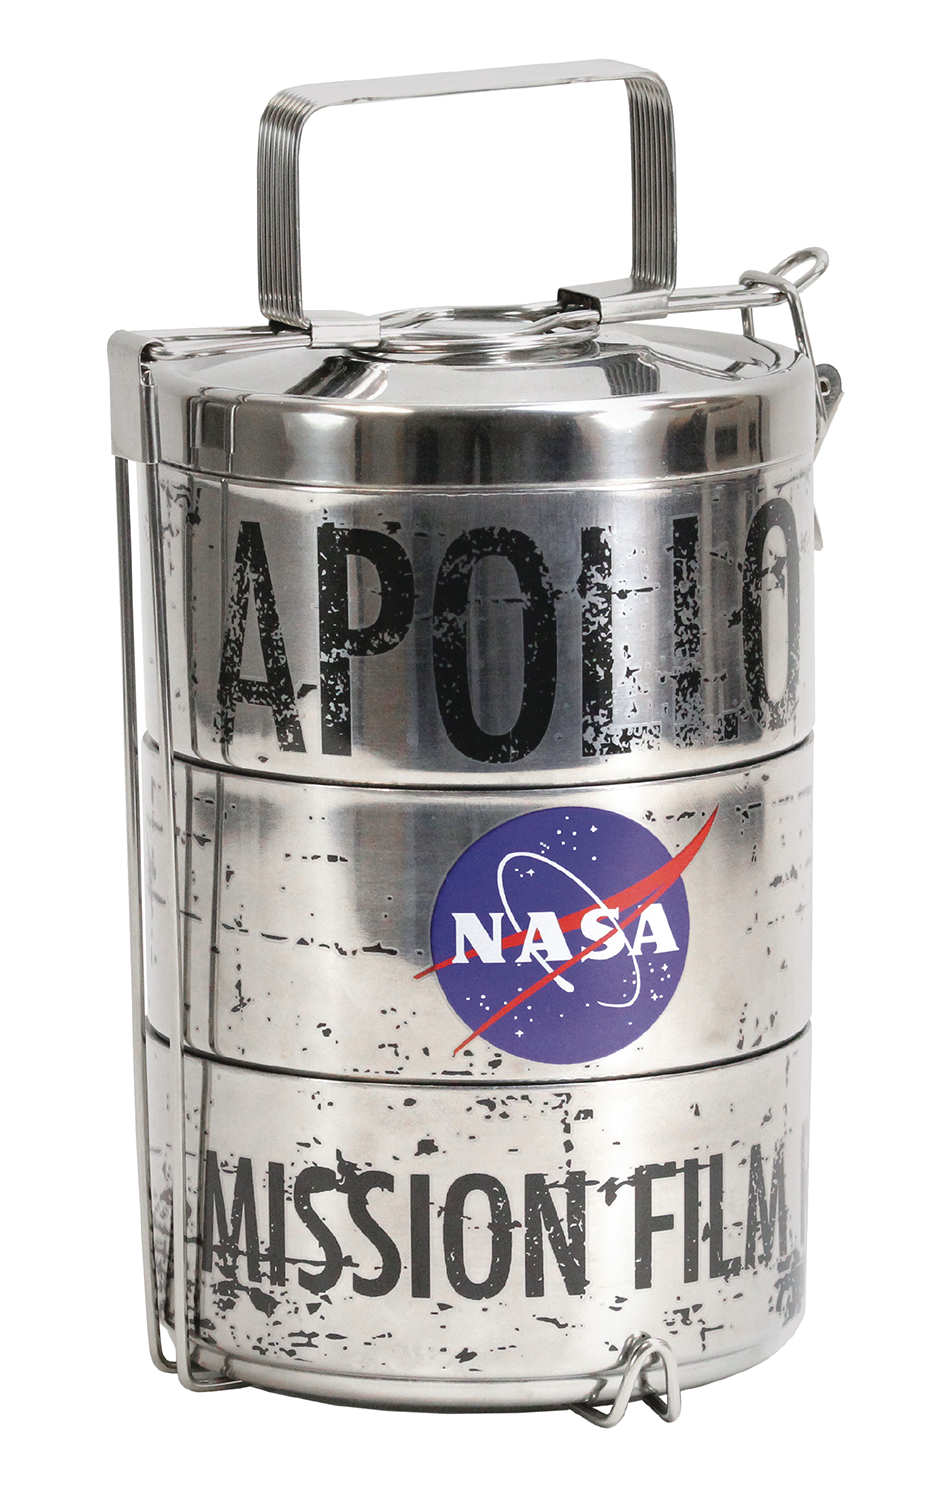 NASA APOLLO MOON LANDING FILM CANISTER LUNCH TINS